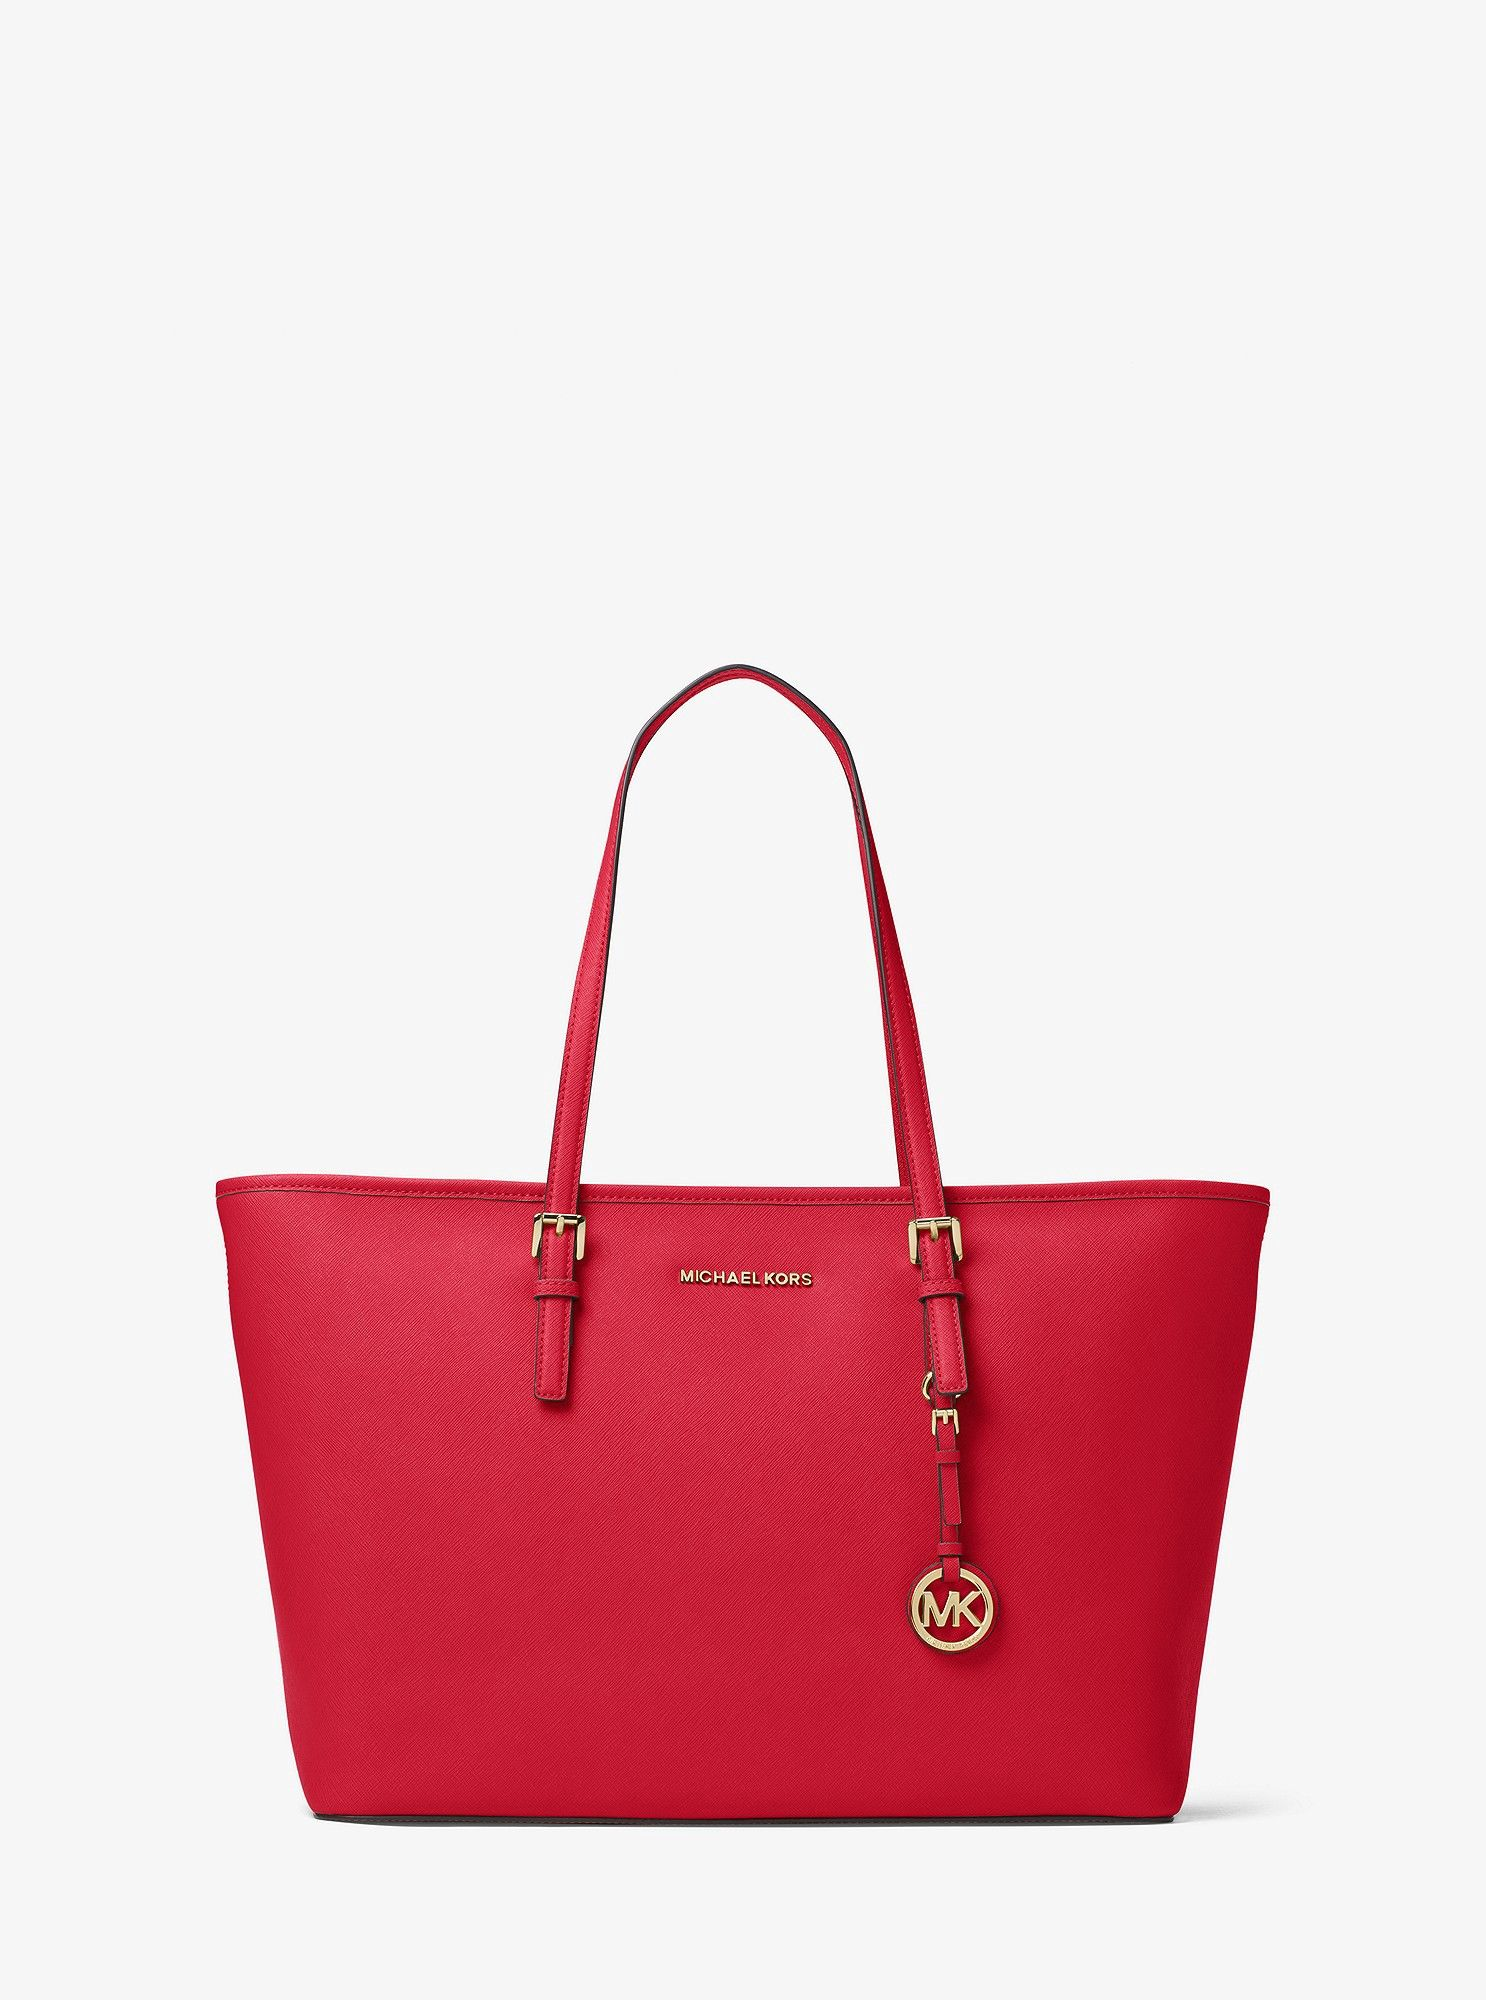 27e5db00c92a Michael Kors Jet Set Travel Medium Saffiano Leather Top-Zip Tote - Bright  Red